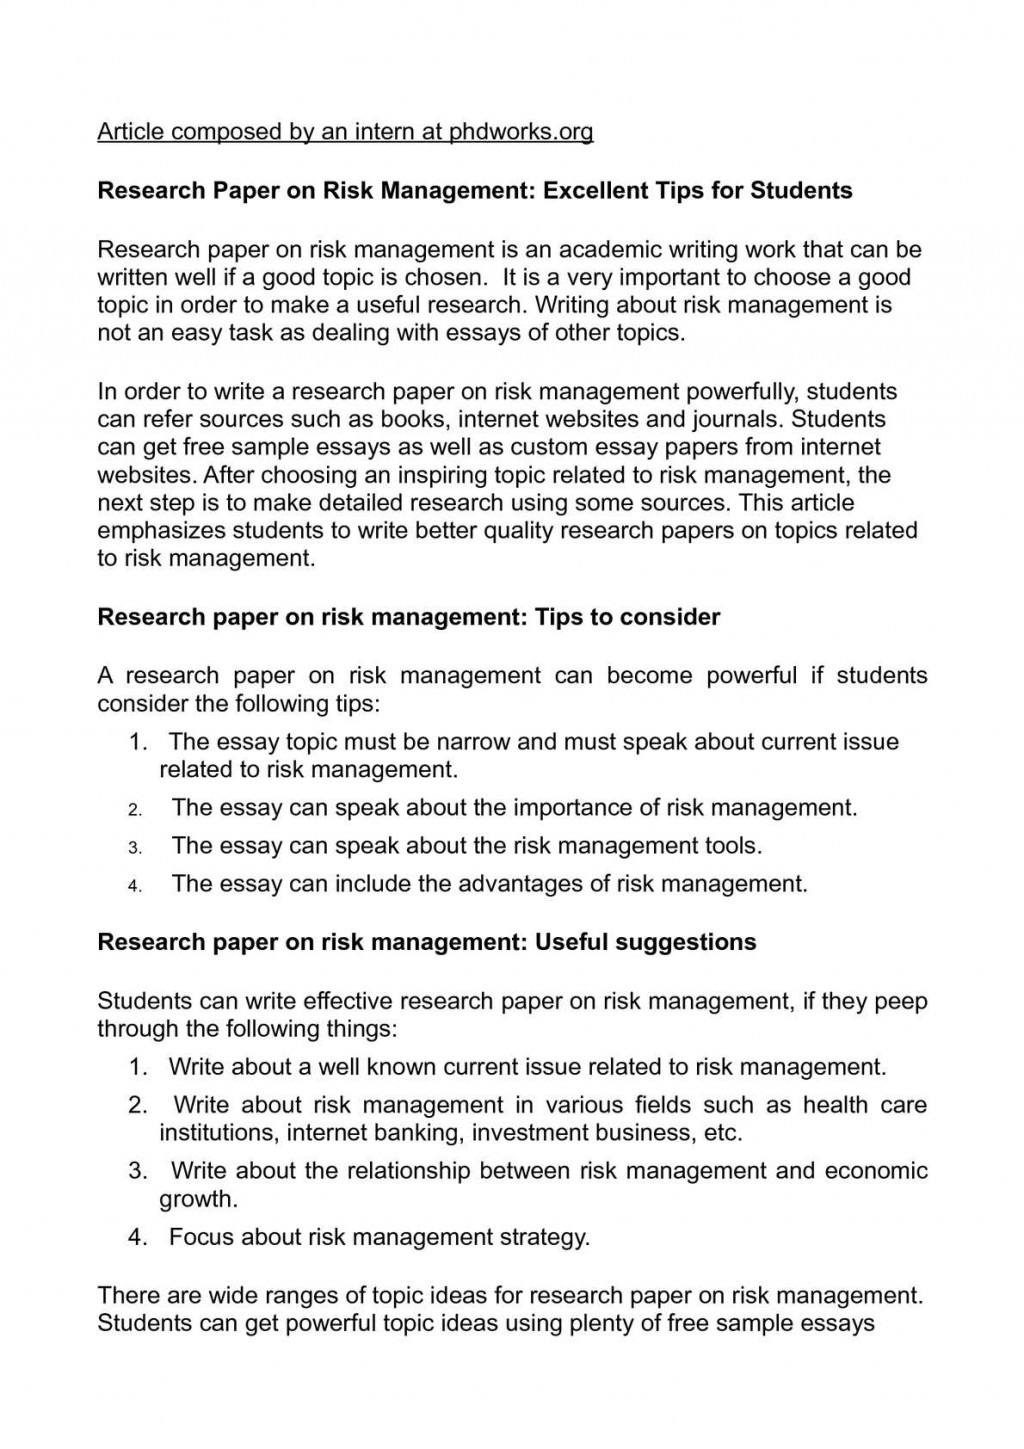 015 Order Of Writing Research Paper Impressive A Correct Sequence Steps For Large